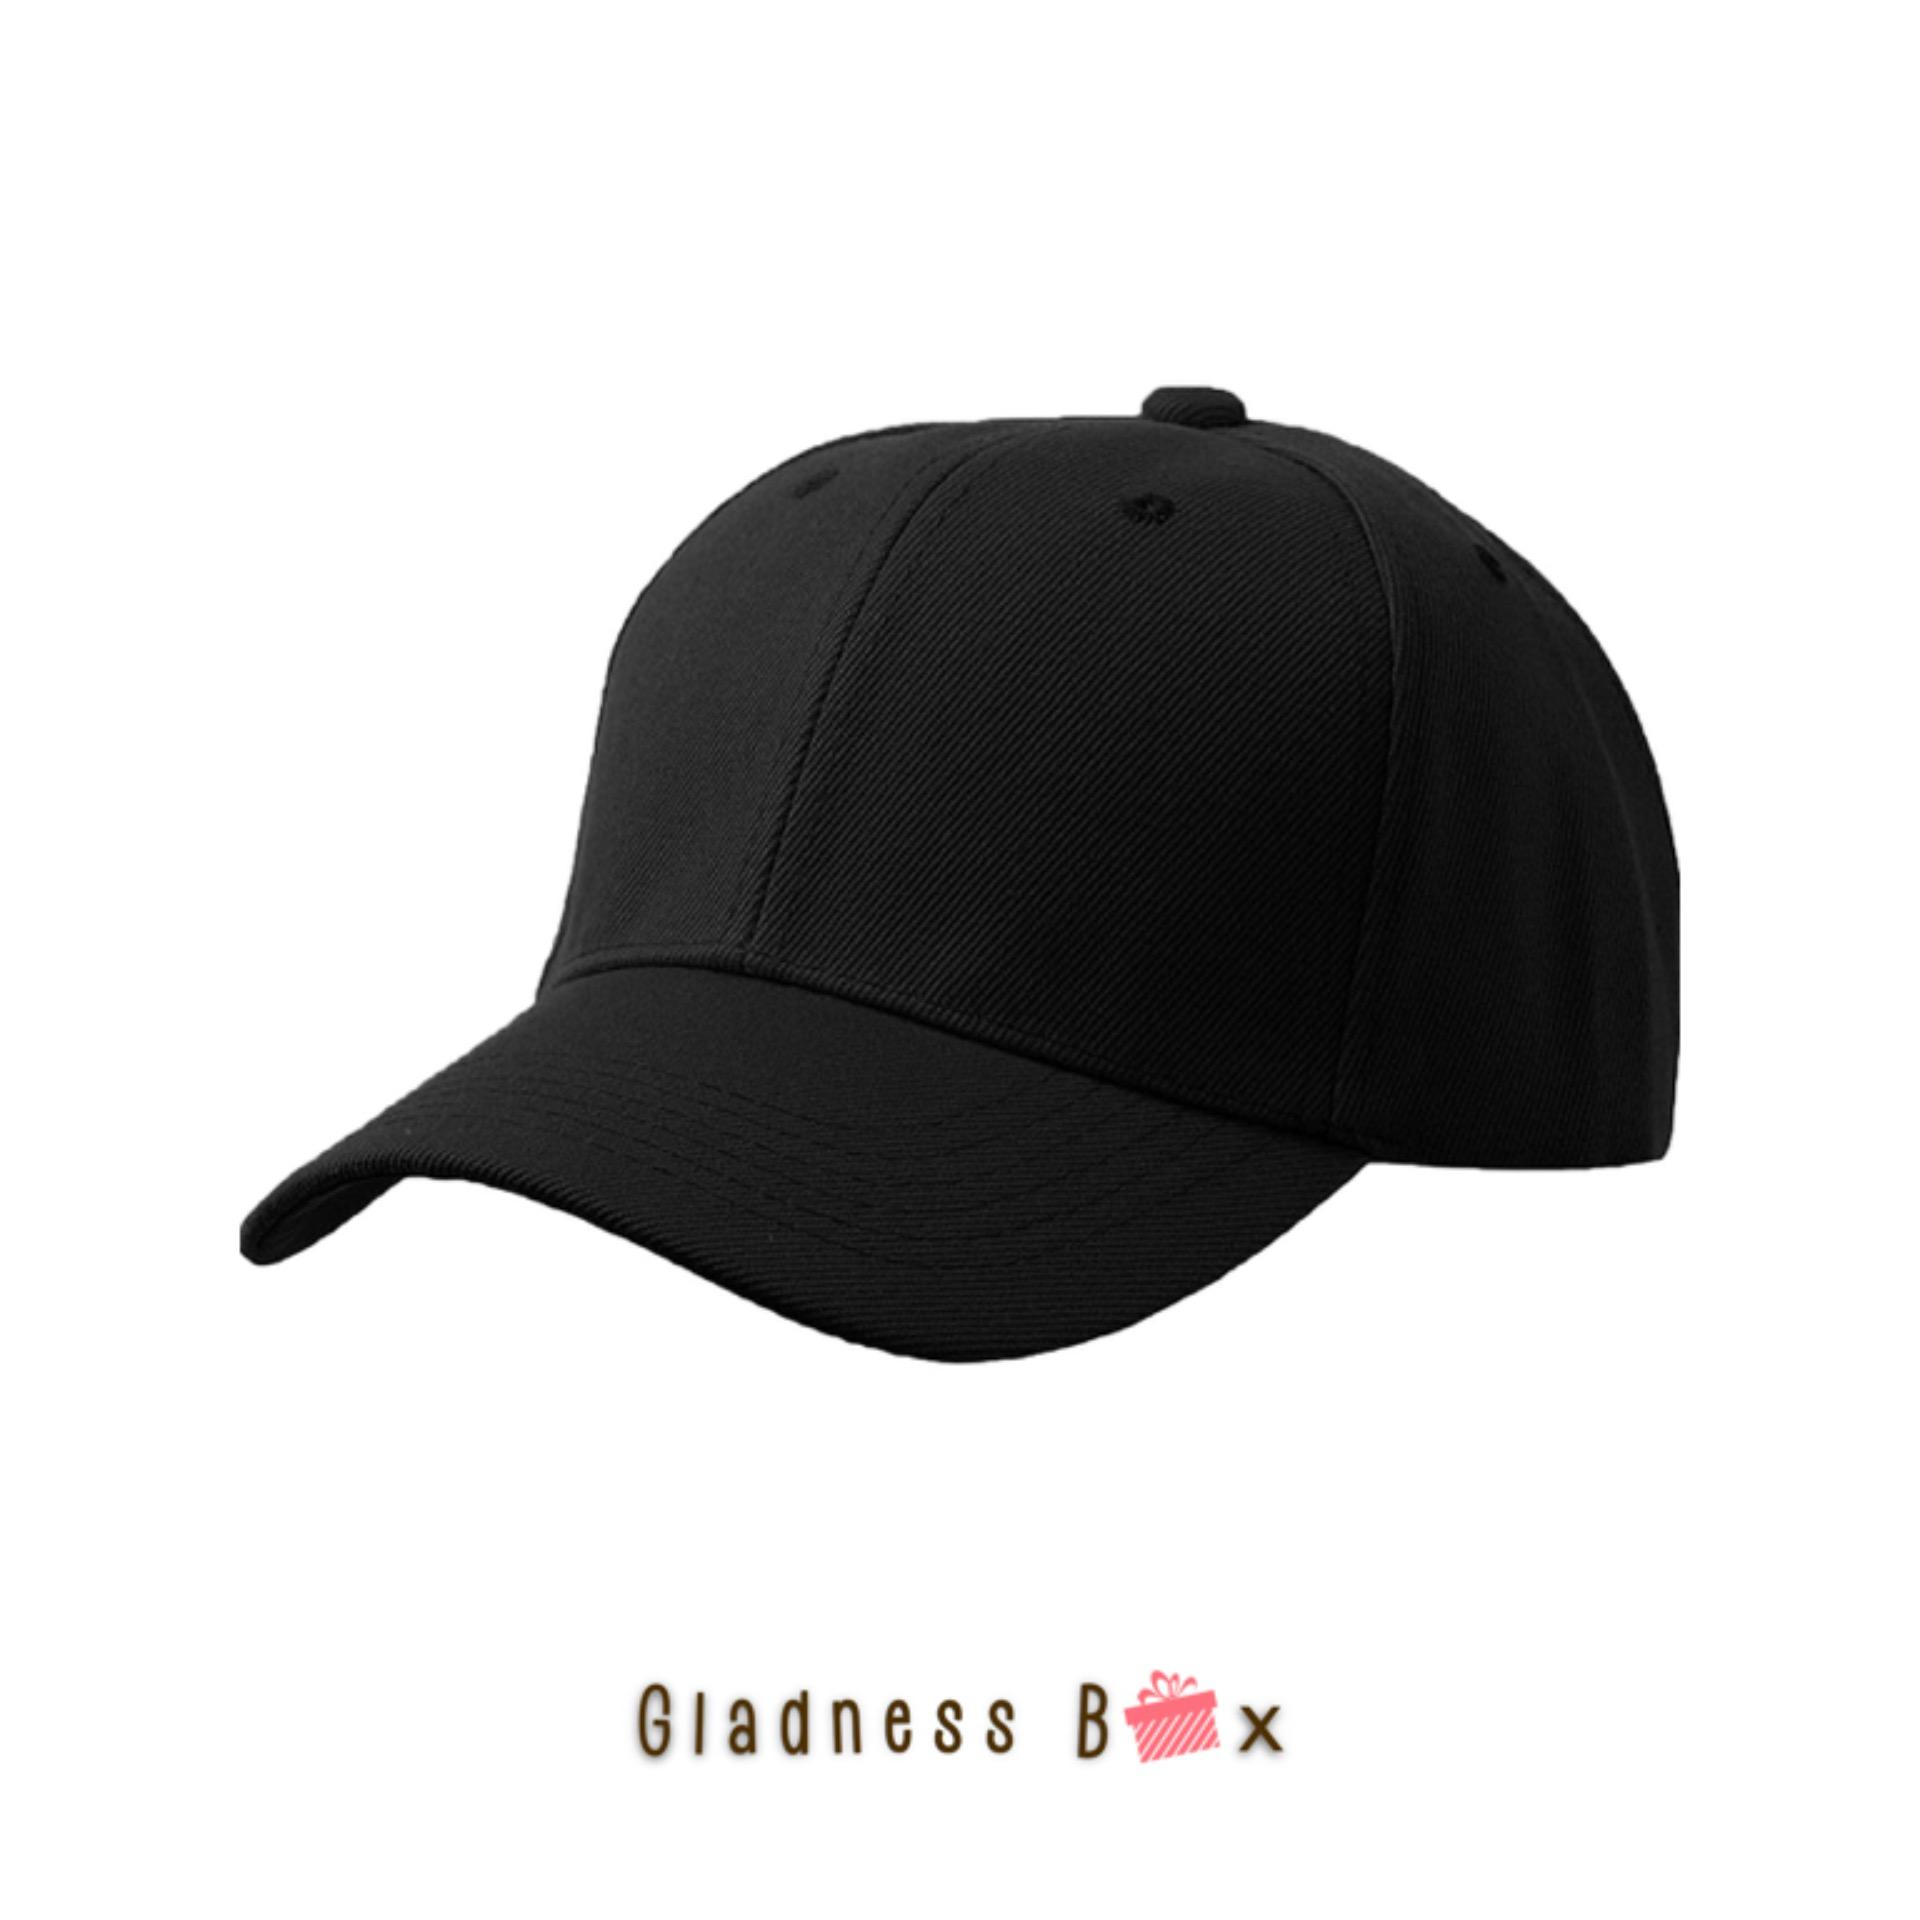 dbc1ae99826 Gladness Box High Quality Plain Baseball Cap for Men Women Unisex